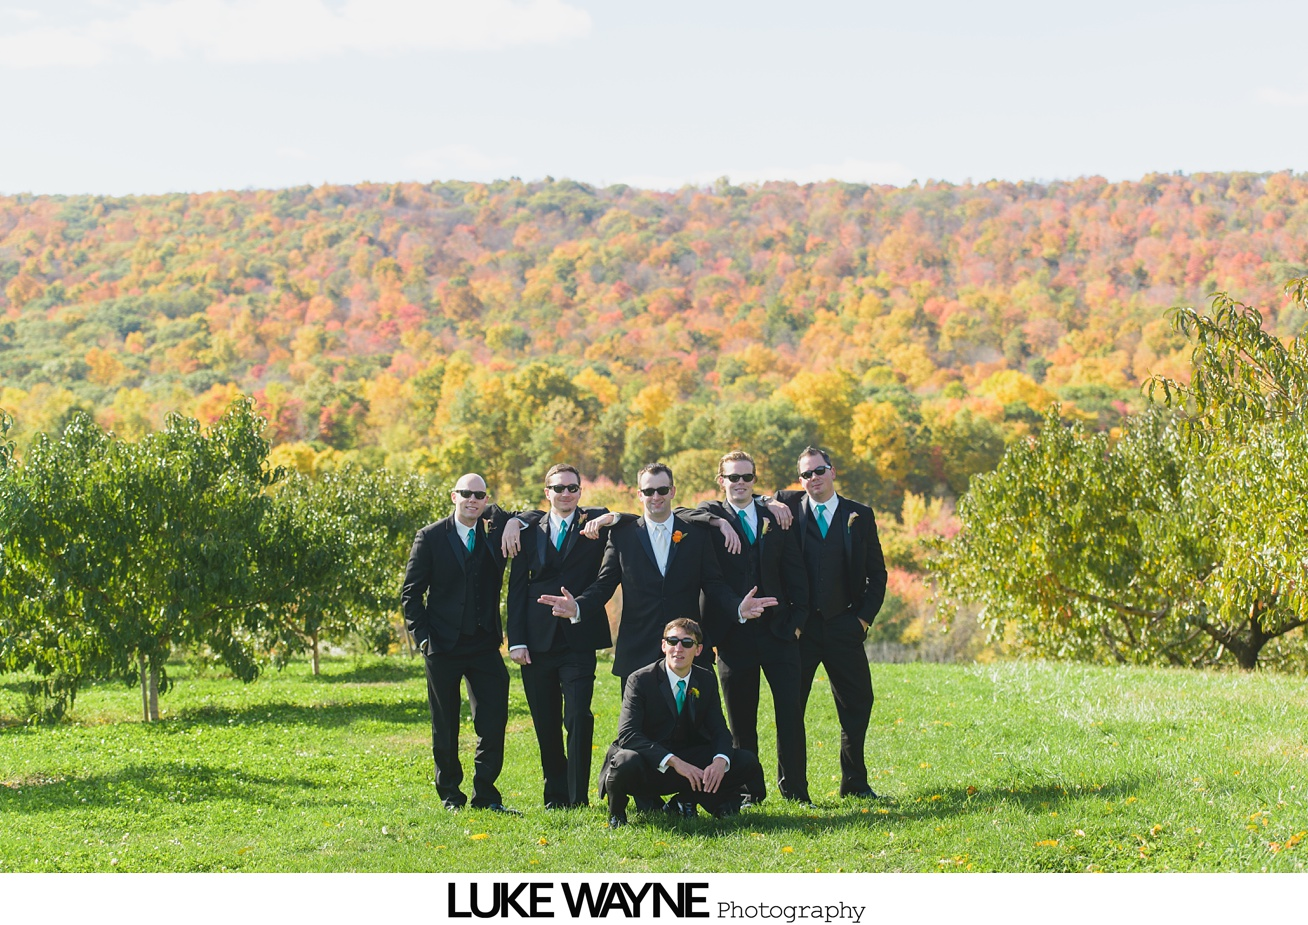 Saint_Clements_St_Wedding_Lyman_Orchards_Fall_Autumn_16